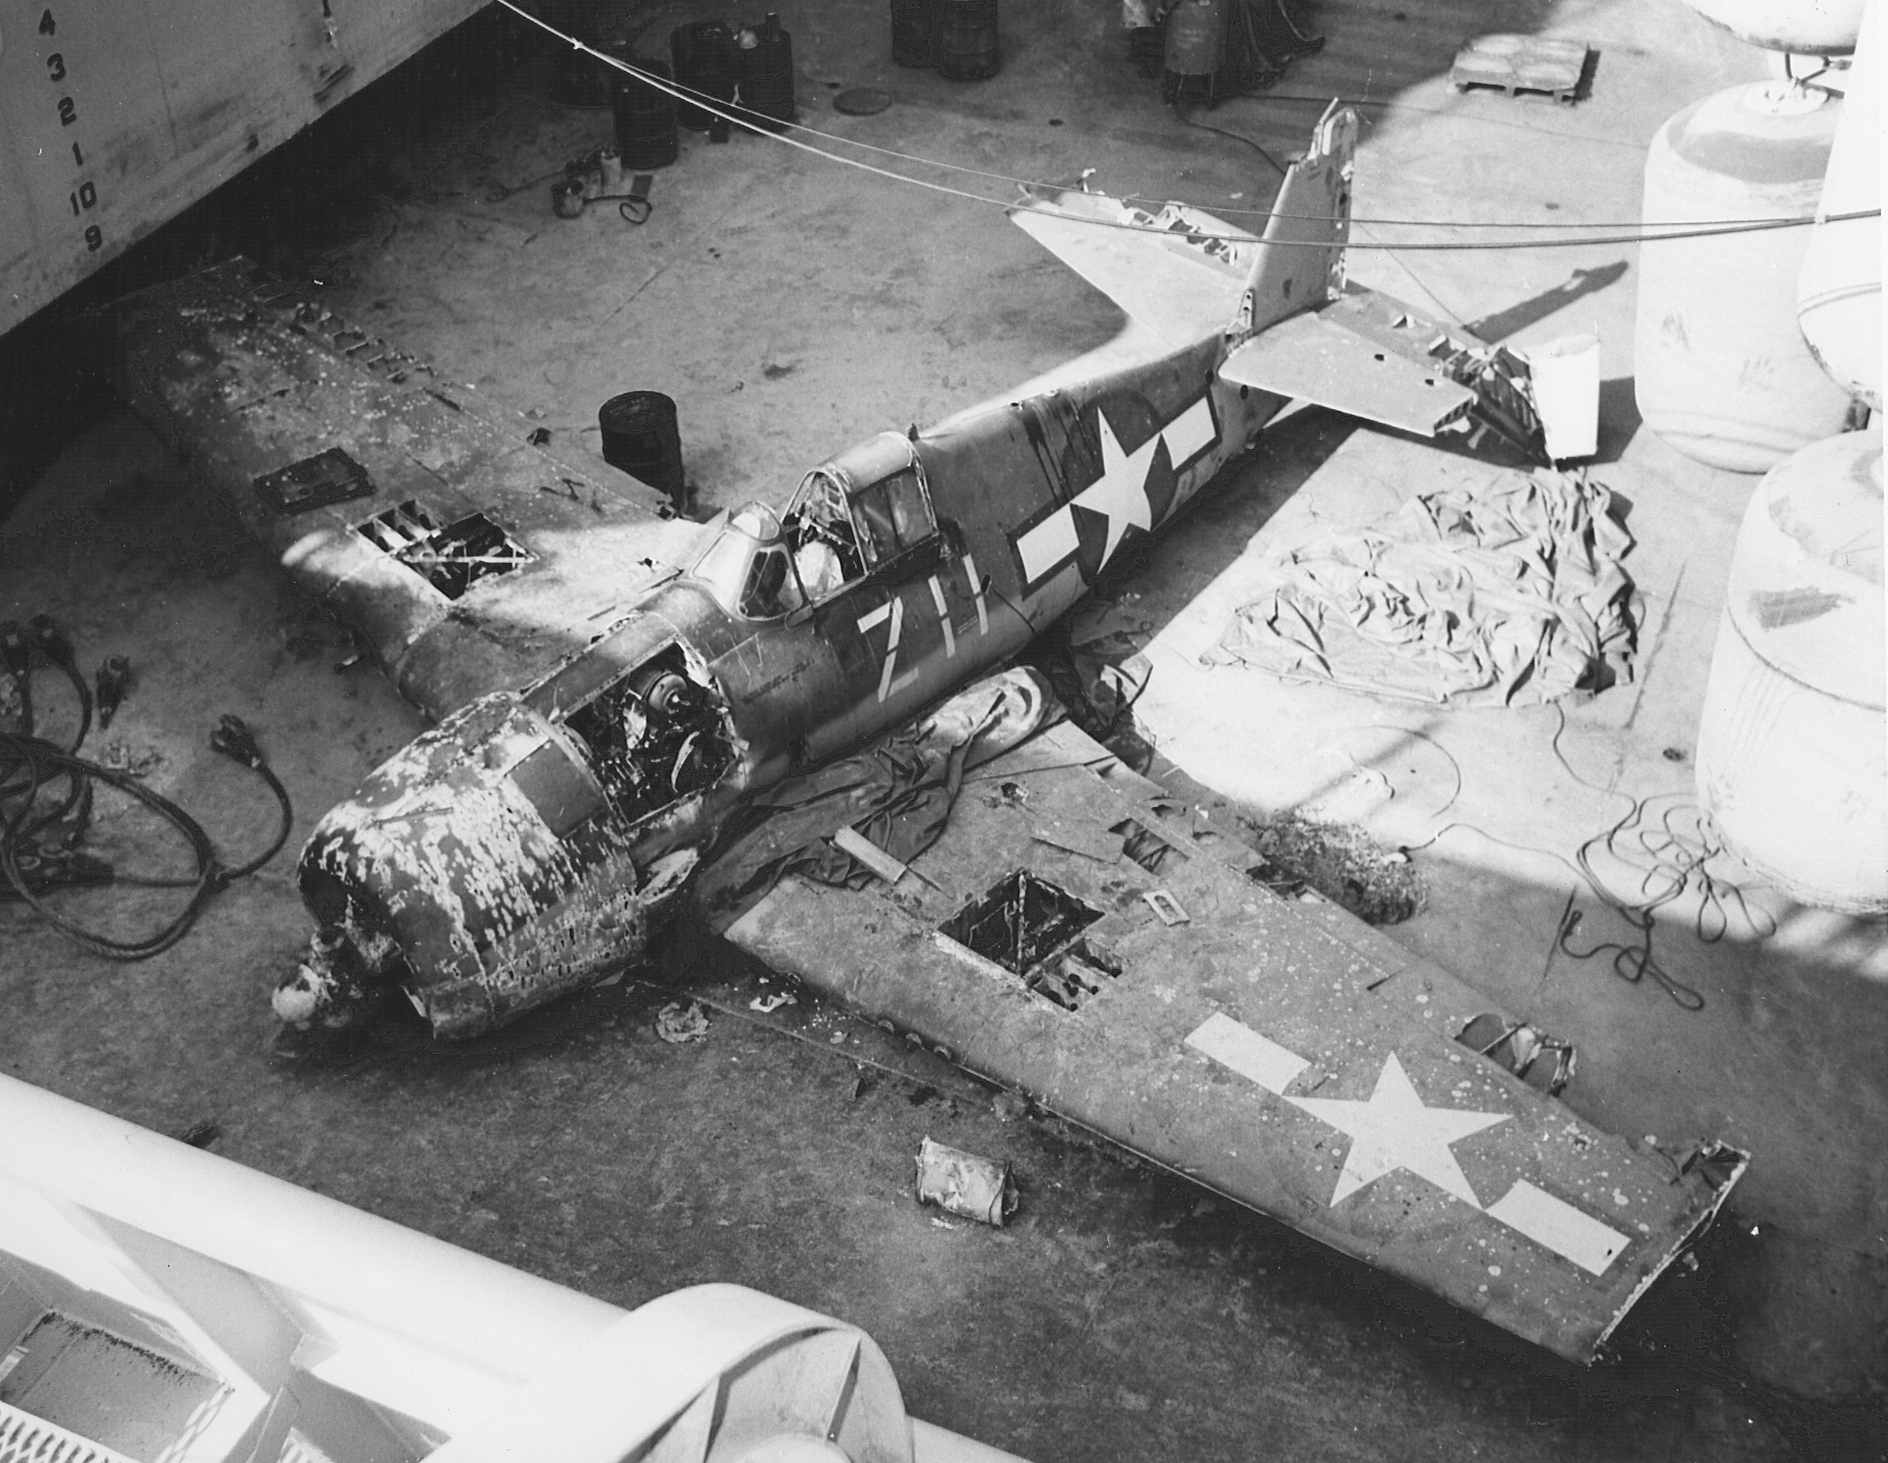 Grumman F6F 5 Hellcat VF 21 White Z11 ditched off the coast of San Diego CA salvaged 1970 03